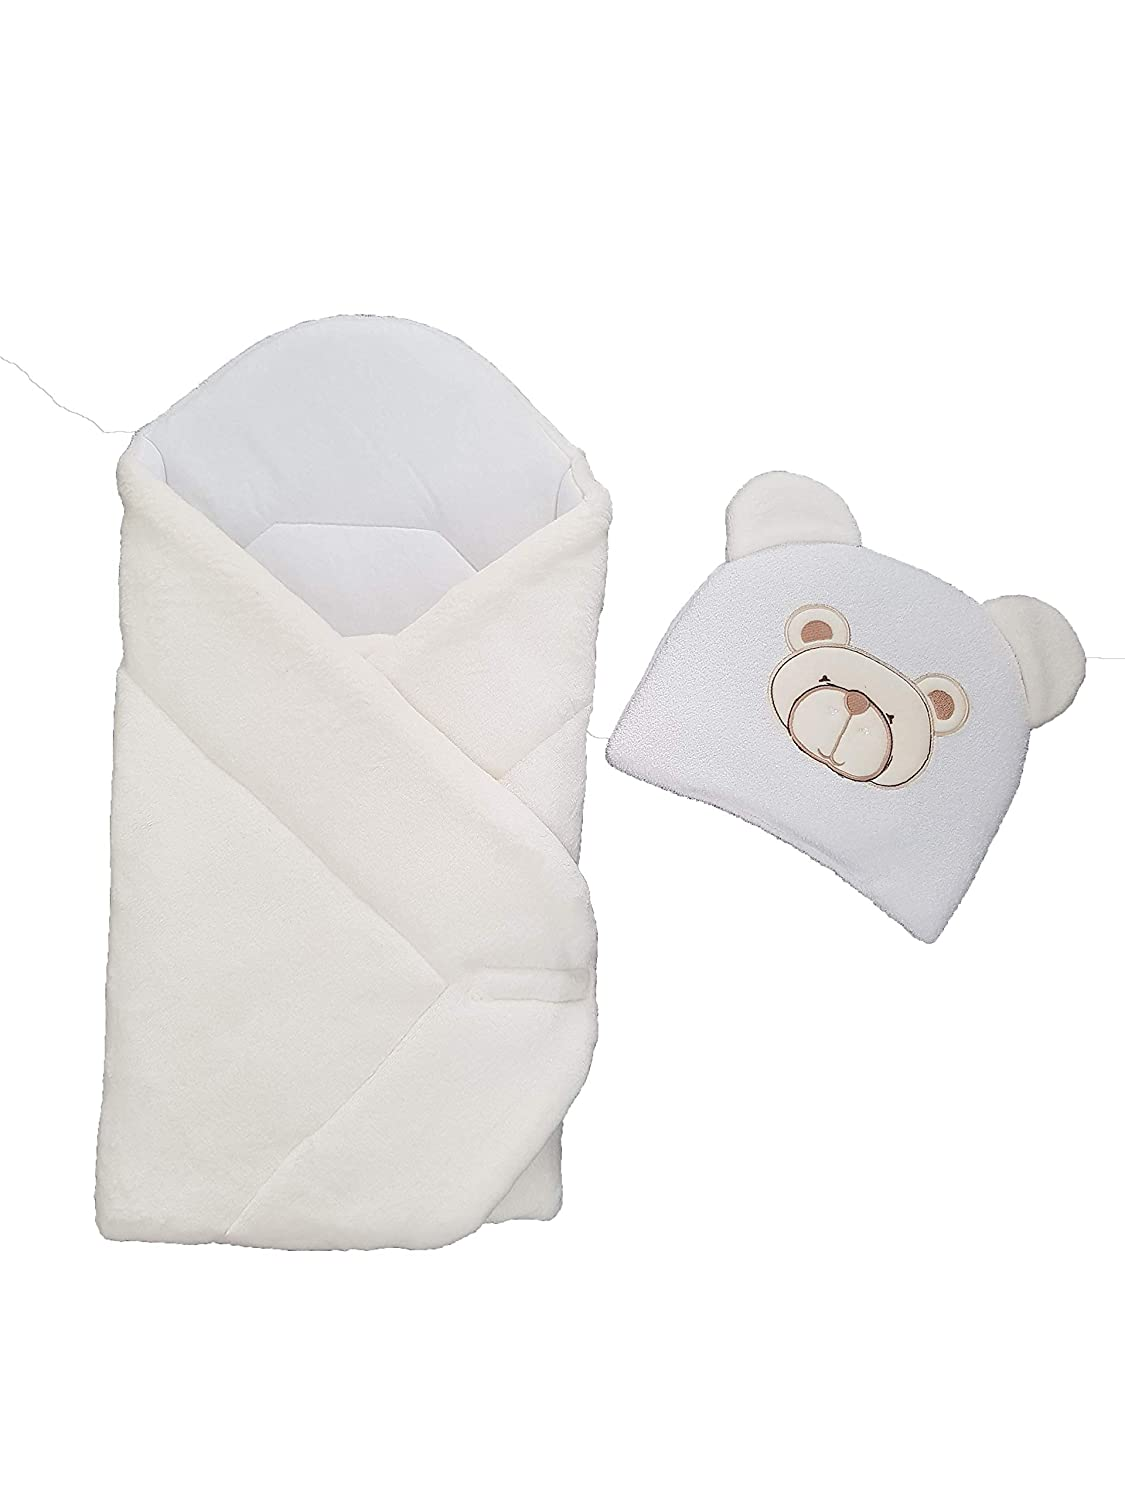 af209c85061 Amazon.com  BlueberryShop FLEECE with Pillow Very WARM and Cute Swaddle Wrap  Blanket Sleeping Bag baby shower GIFT PRESENT 0-3m (0-3m) (78 x 78 cm)  Cream  ...